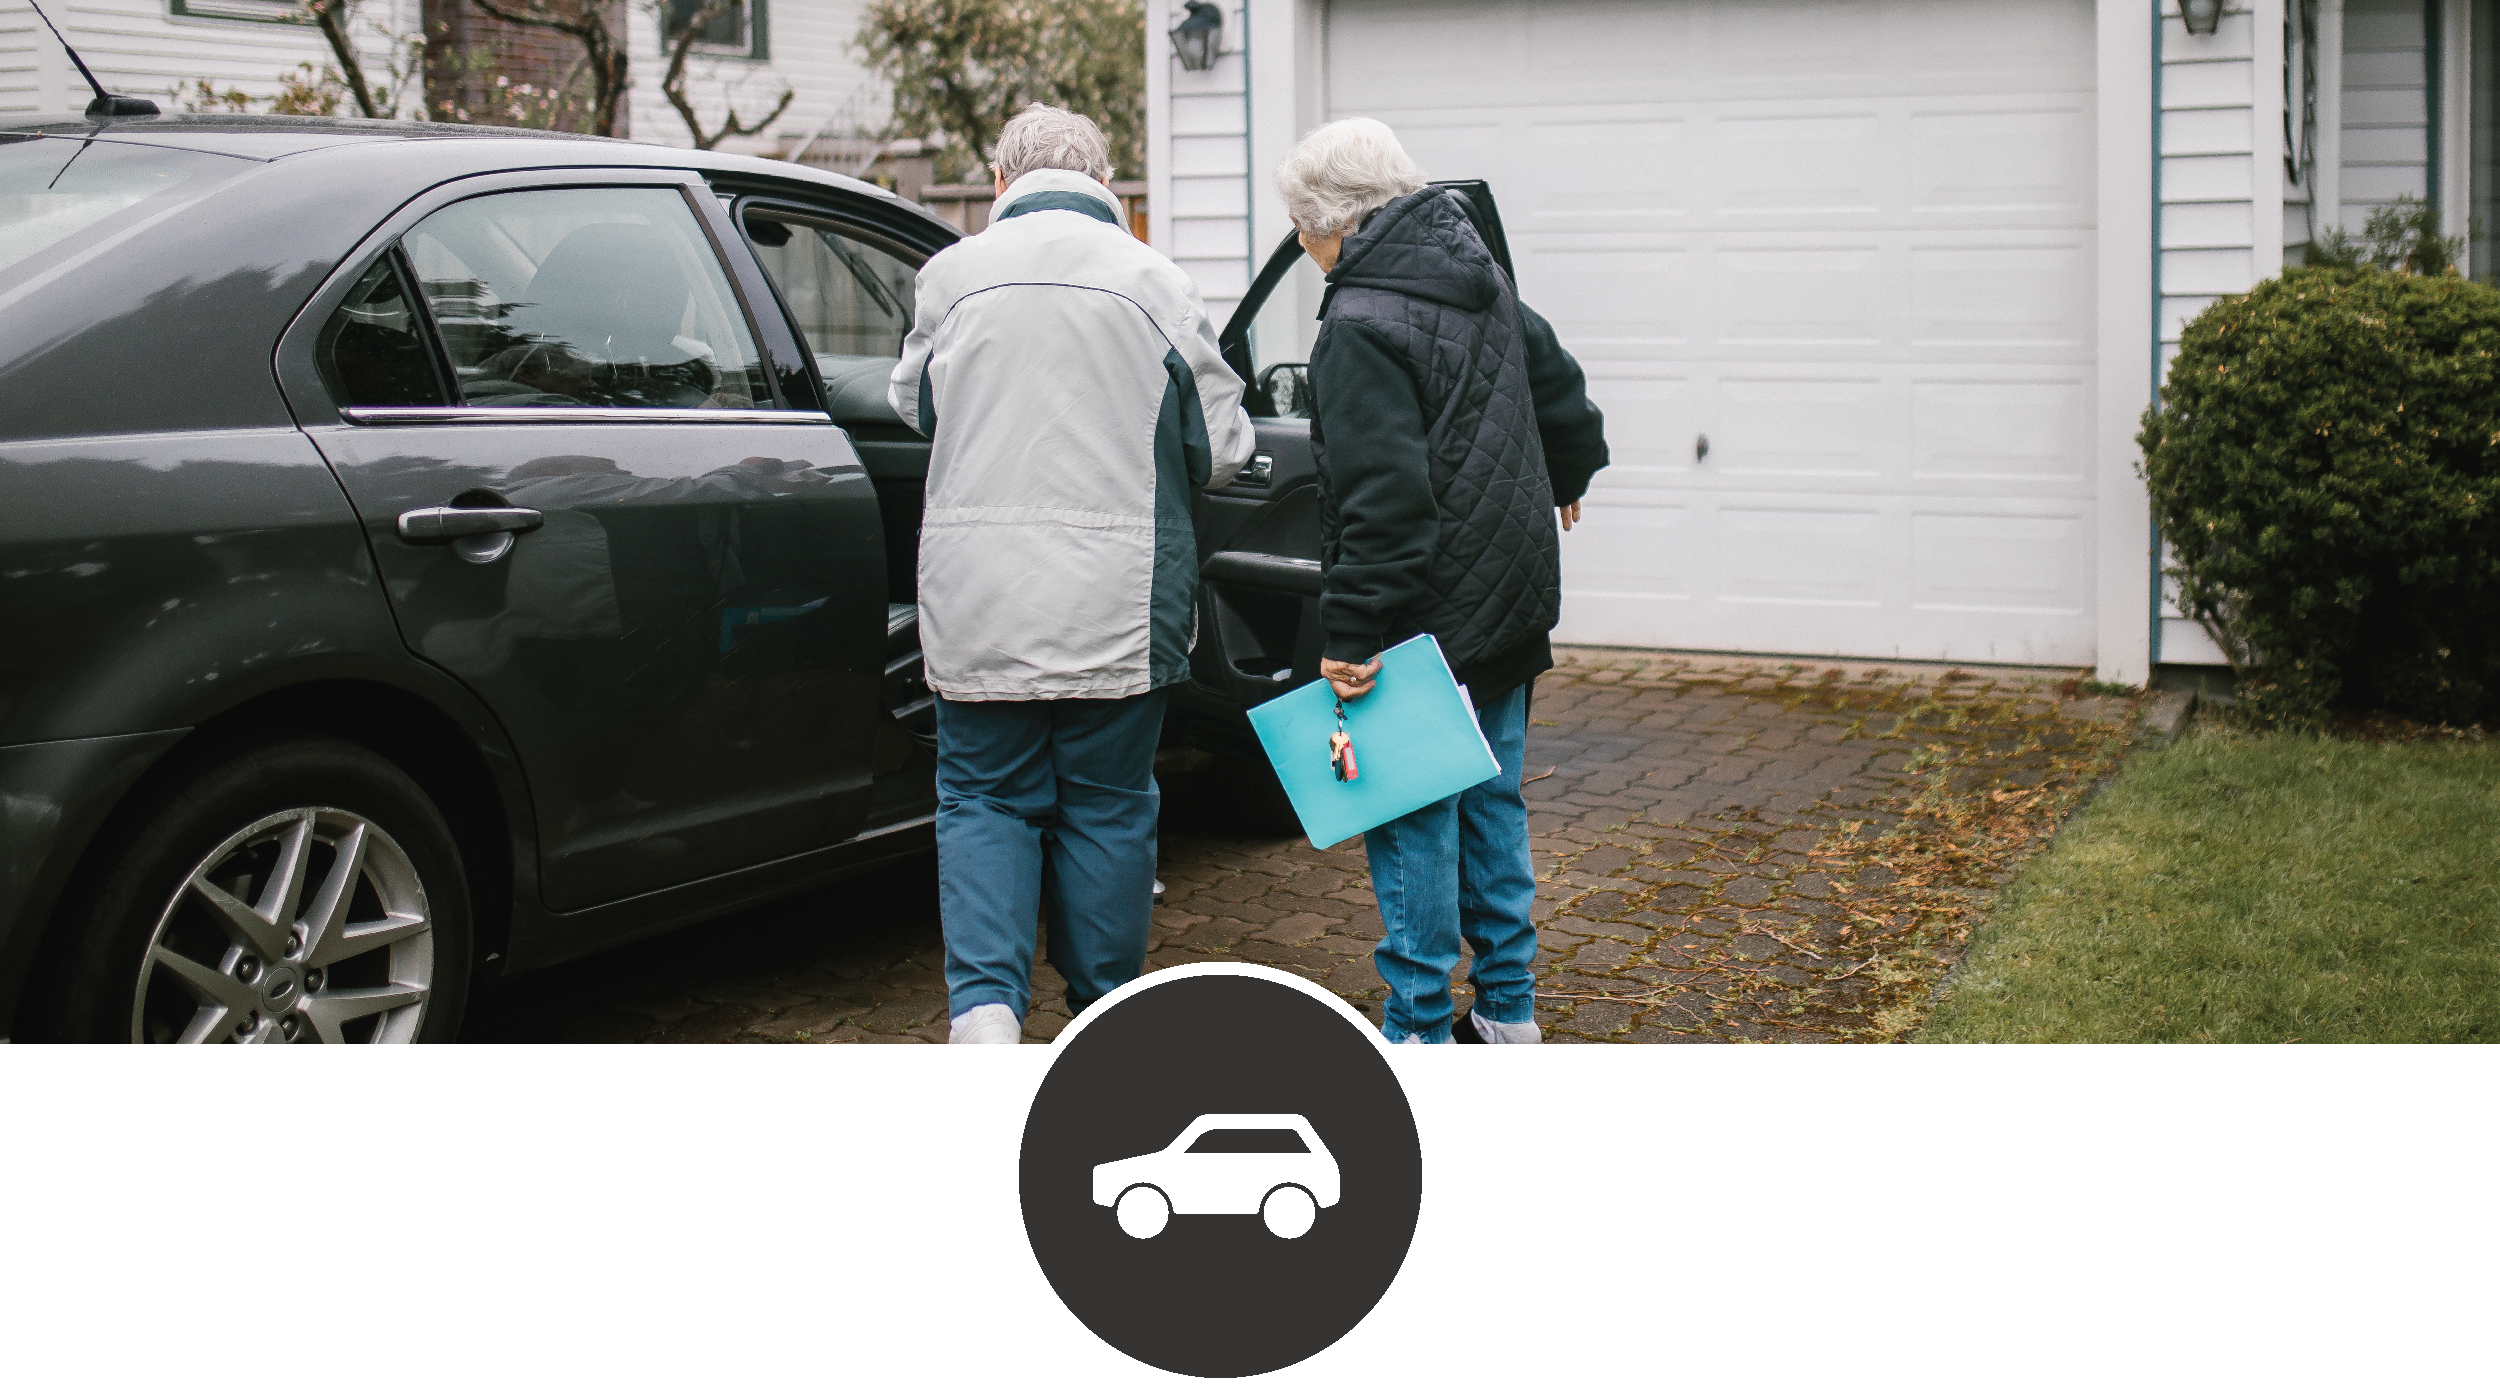 volunteer transportation header image, showing a client and driver getting into a car